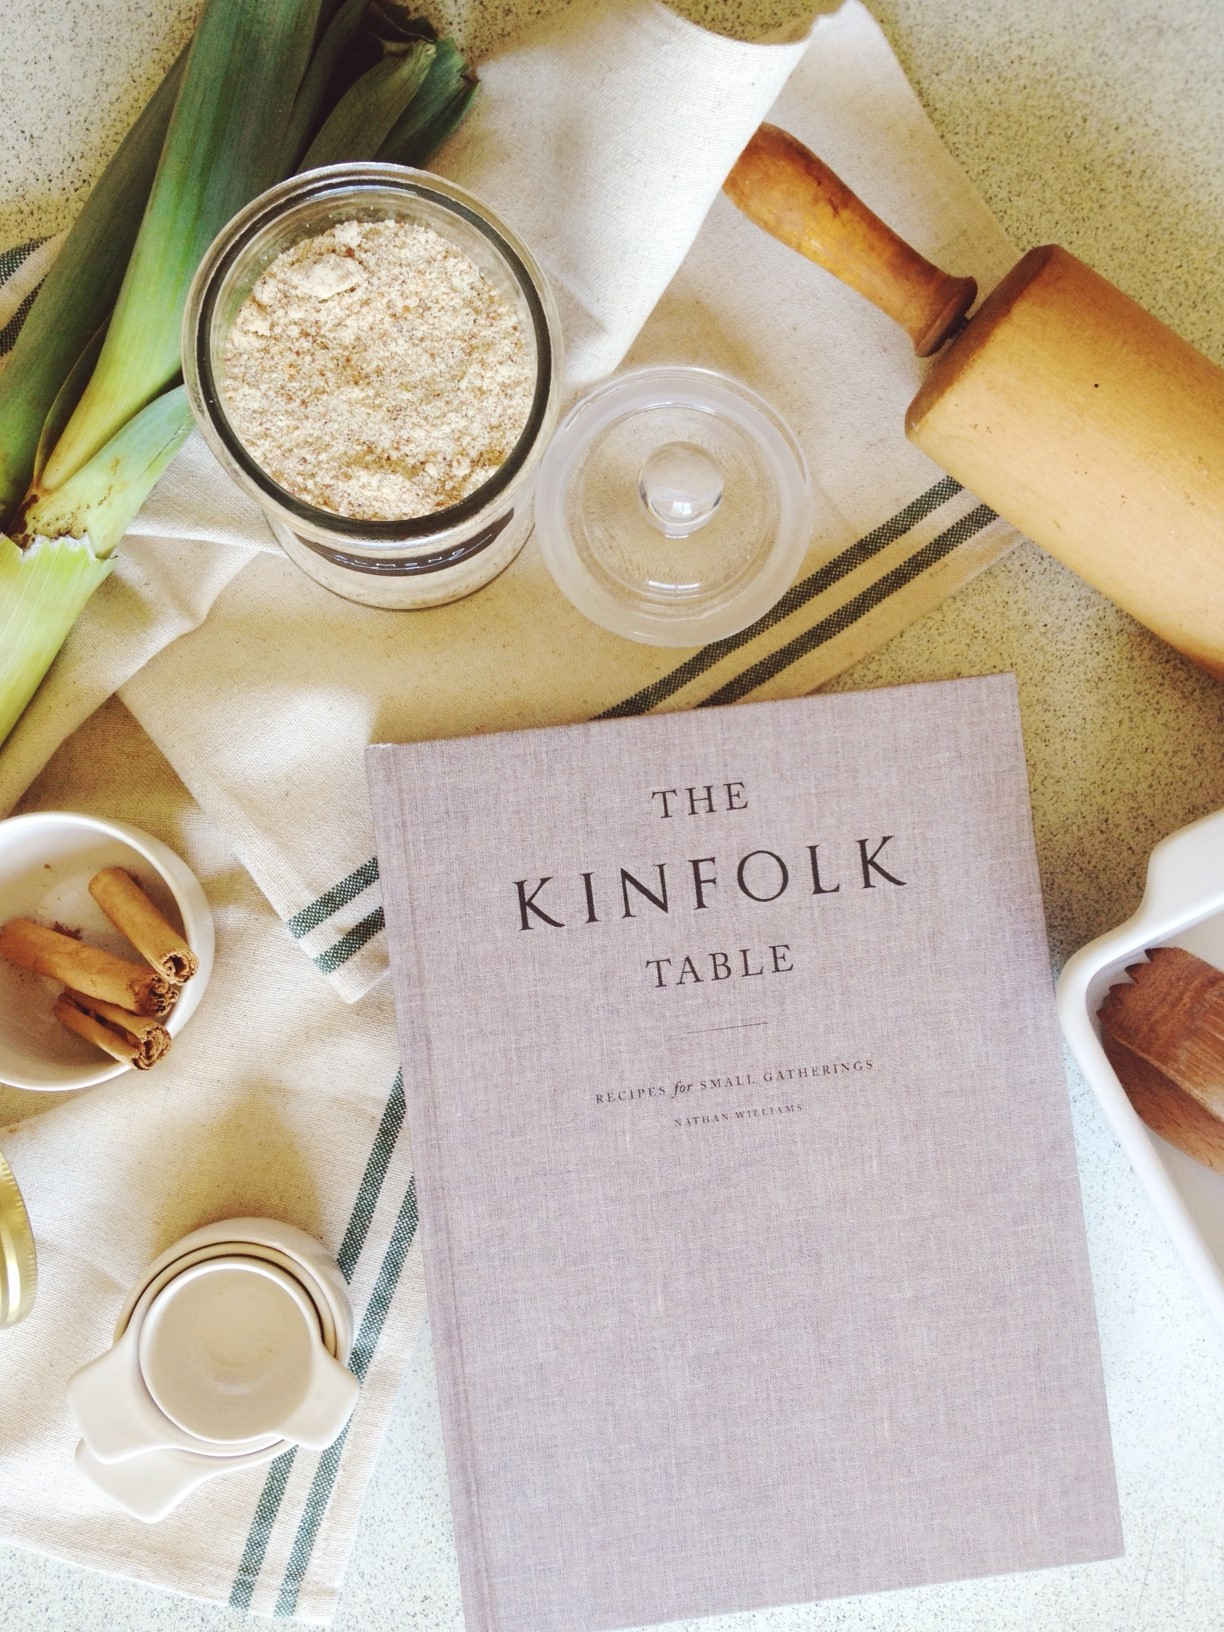 The kinfolk table a busy few weeks marley and lockyer for The kinfolk table